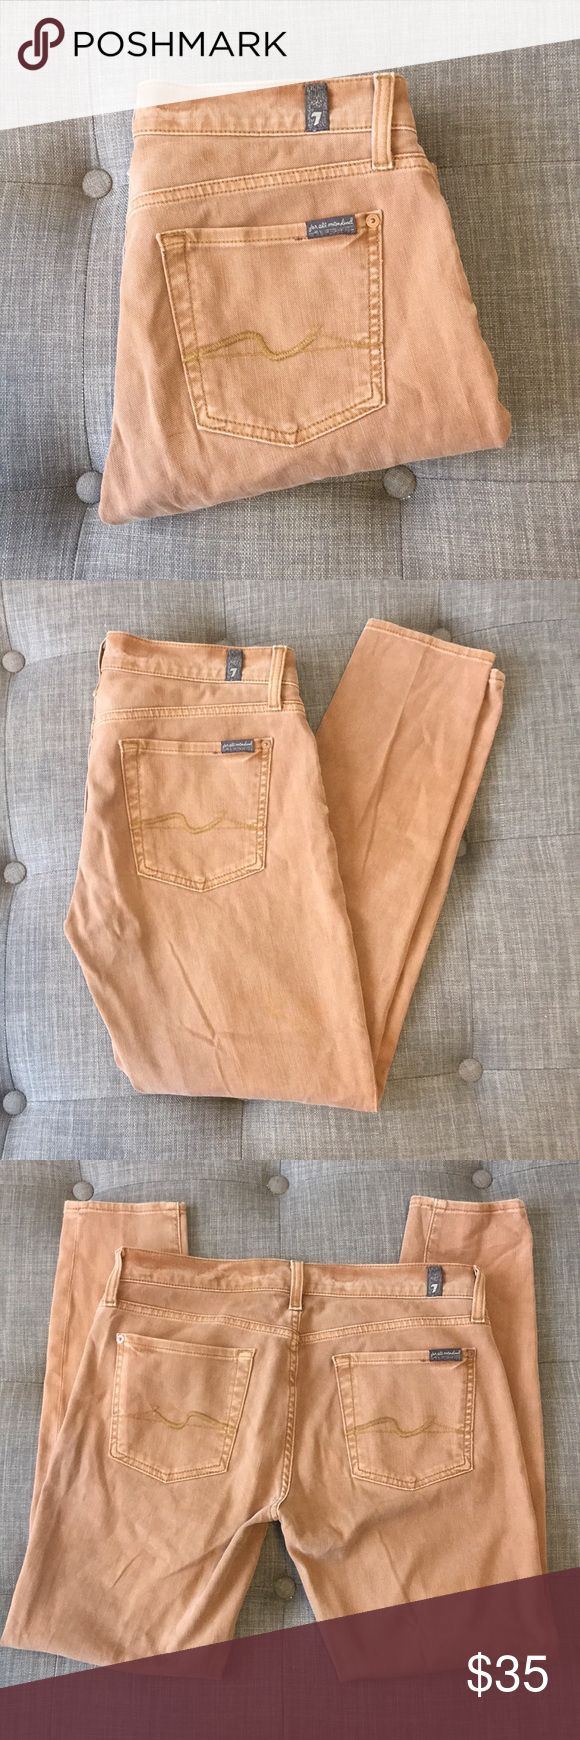 """7 for all mankind Roxanne khaki skinny jeans 28 7 for all mankind Roxanne khaki skinny jeans 28. In excellent used condition. These are so soft and stretchy and comfortable to wear. Waist is approximately 16"""" hips approximately  19"""" inseam approximately 28"""" 7 For All Mankind Jeans Skinny"""